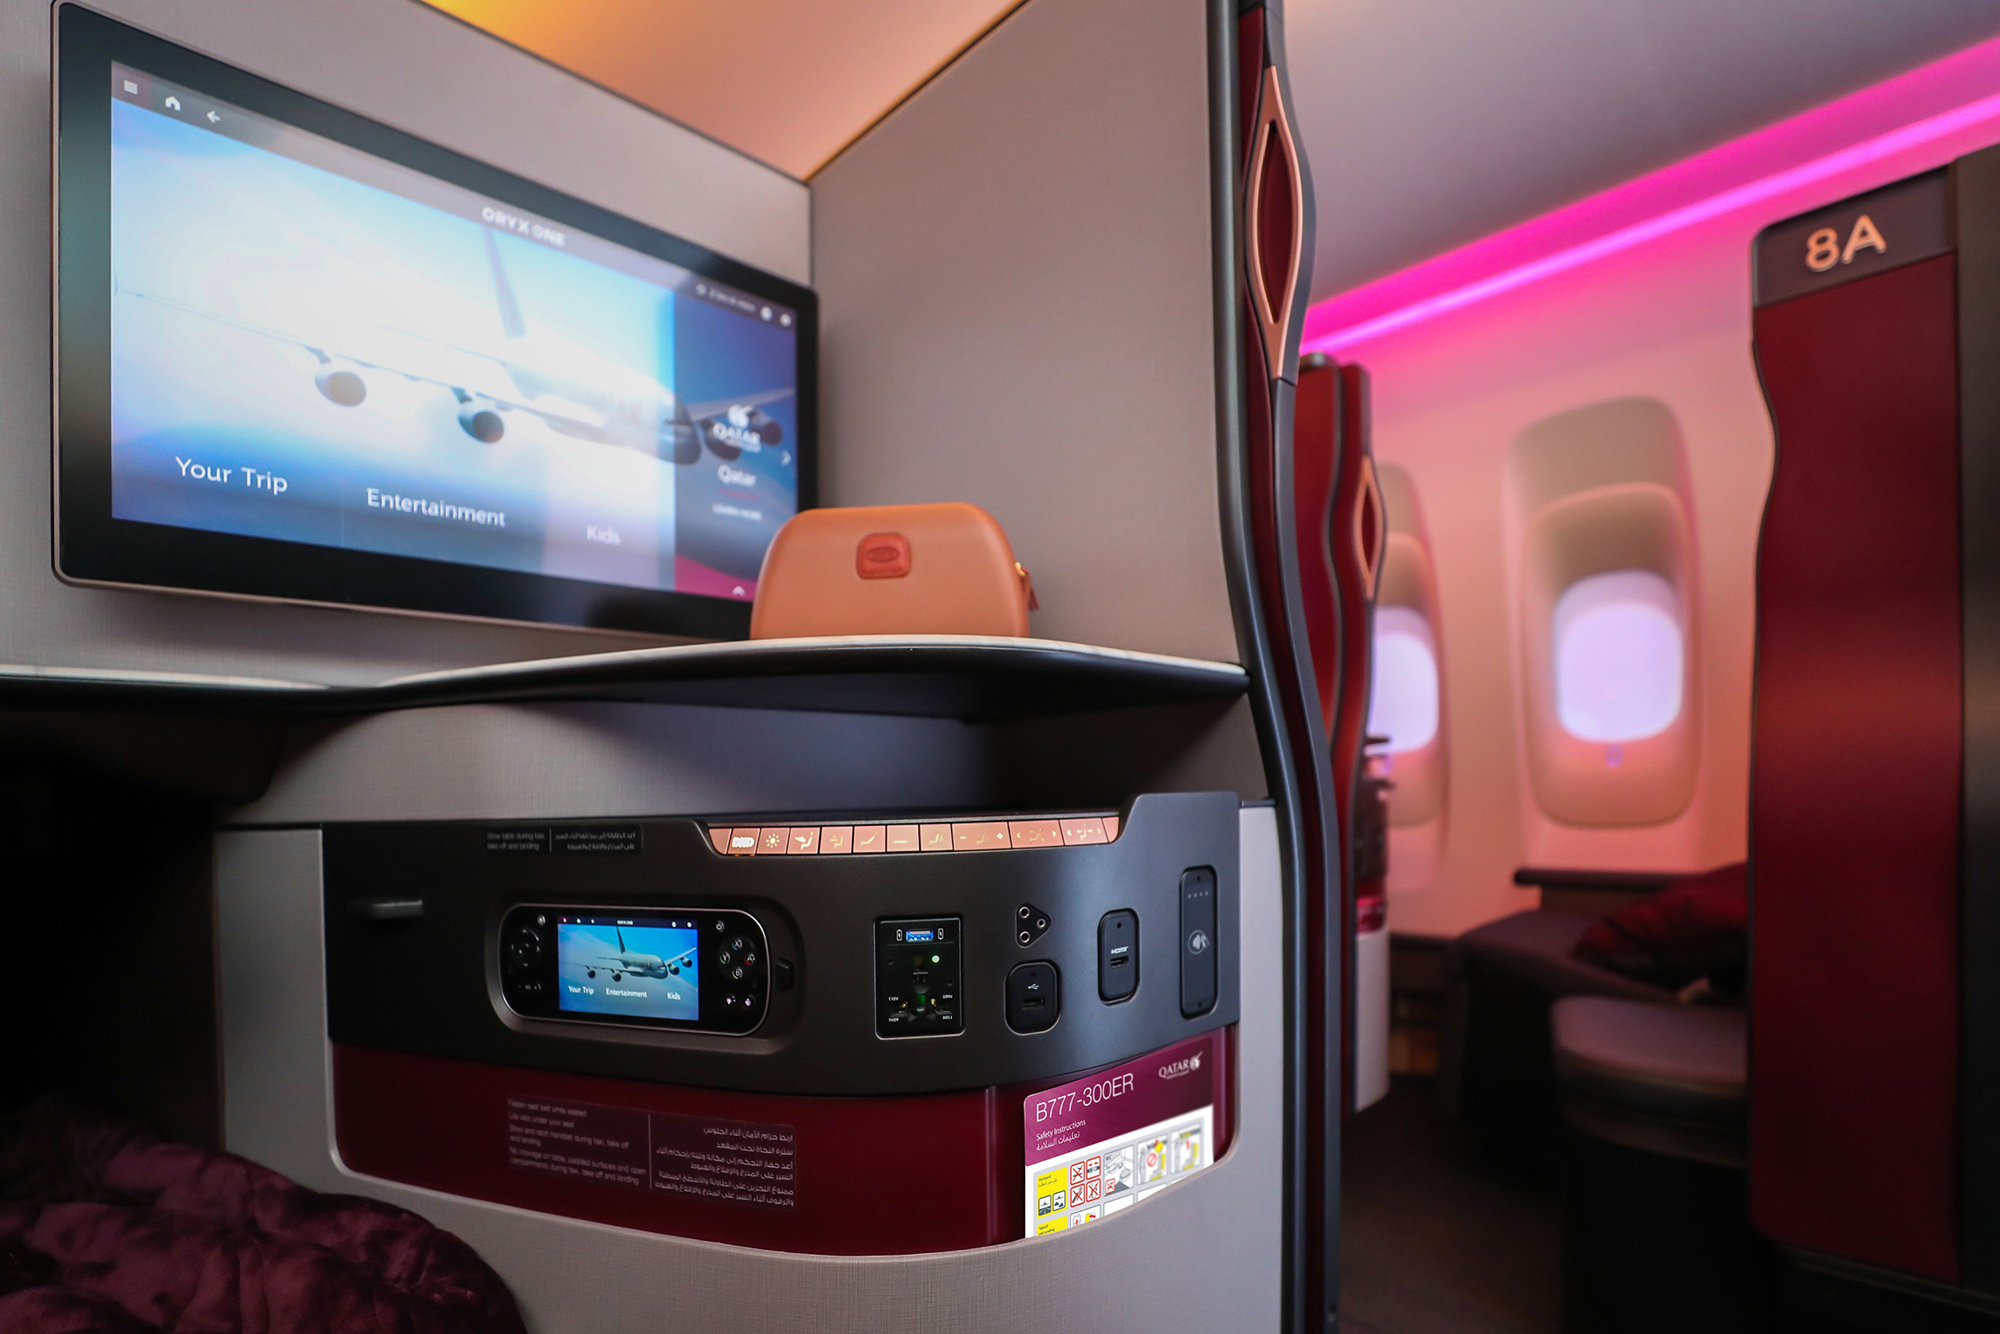 QSuite 77W (Qatar Airways)